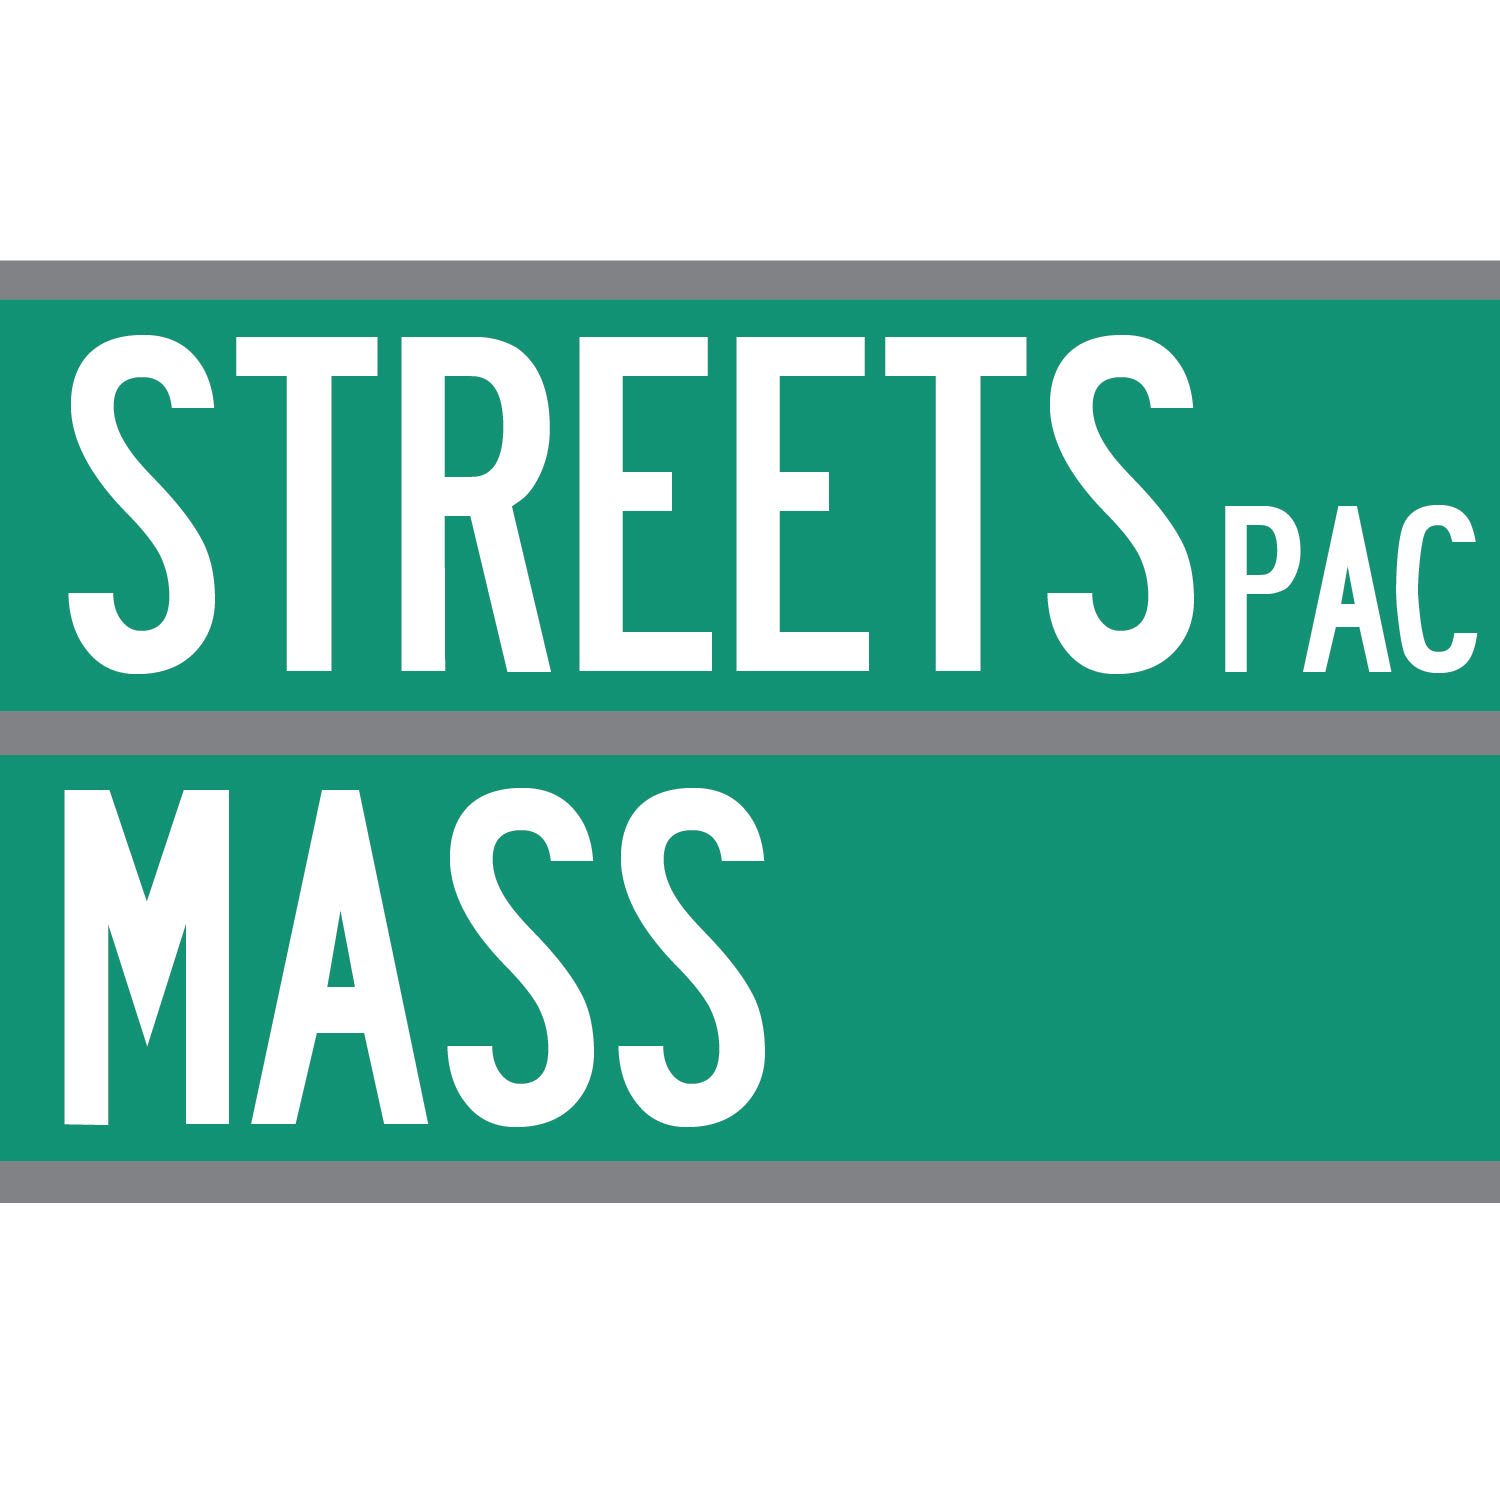 Streets_PAC_new.jpg